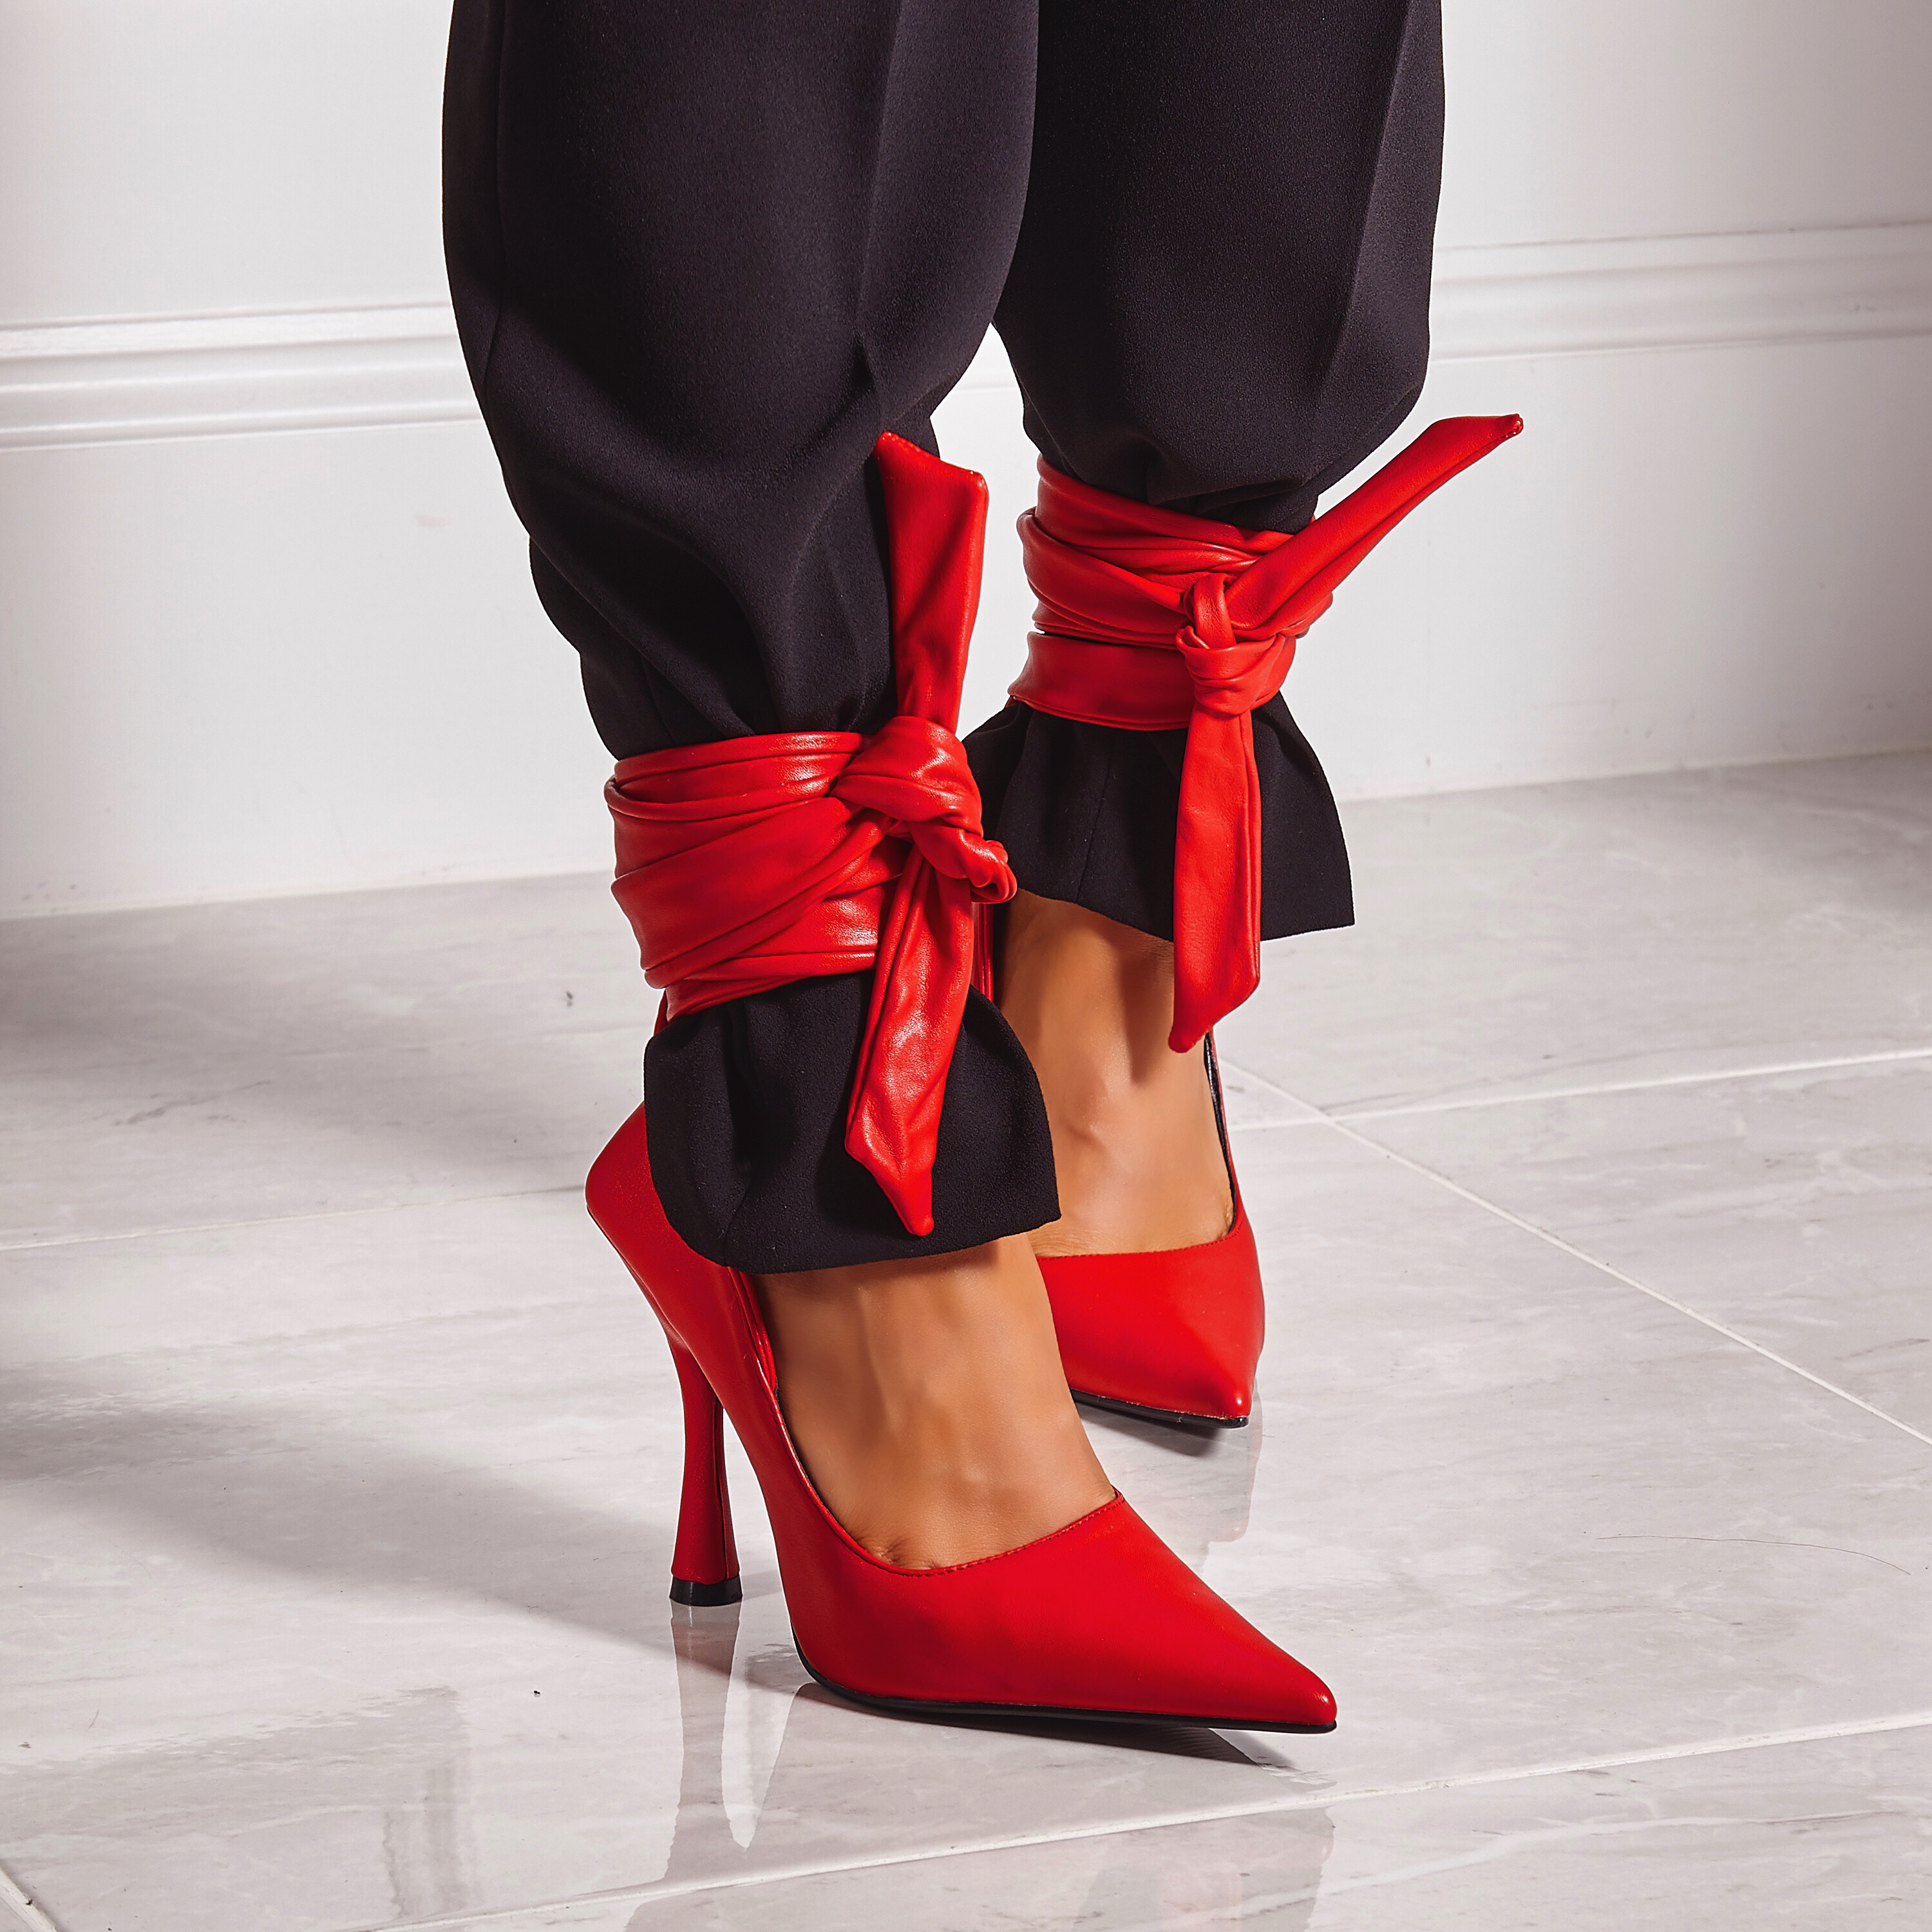 Balling Lace Up Pointed Court Heel In Red Faux Leather